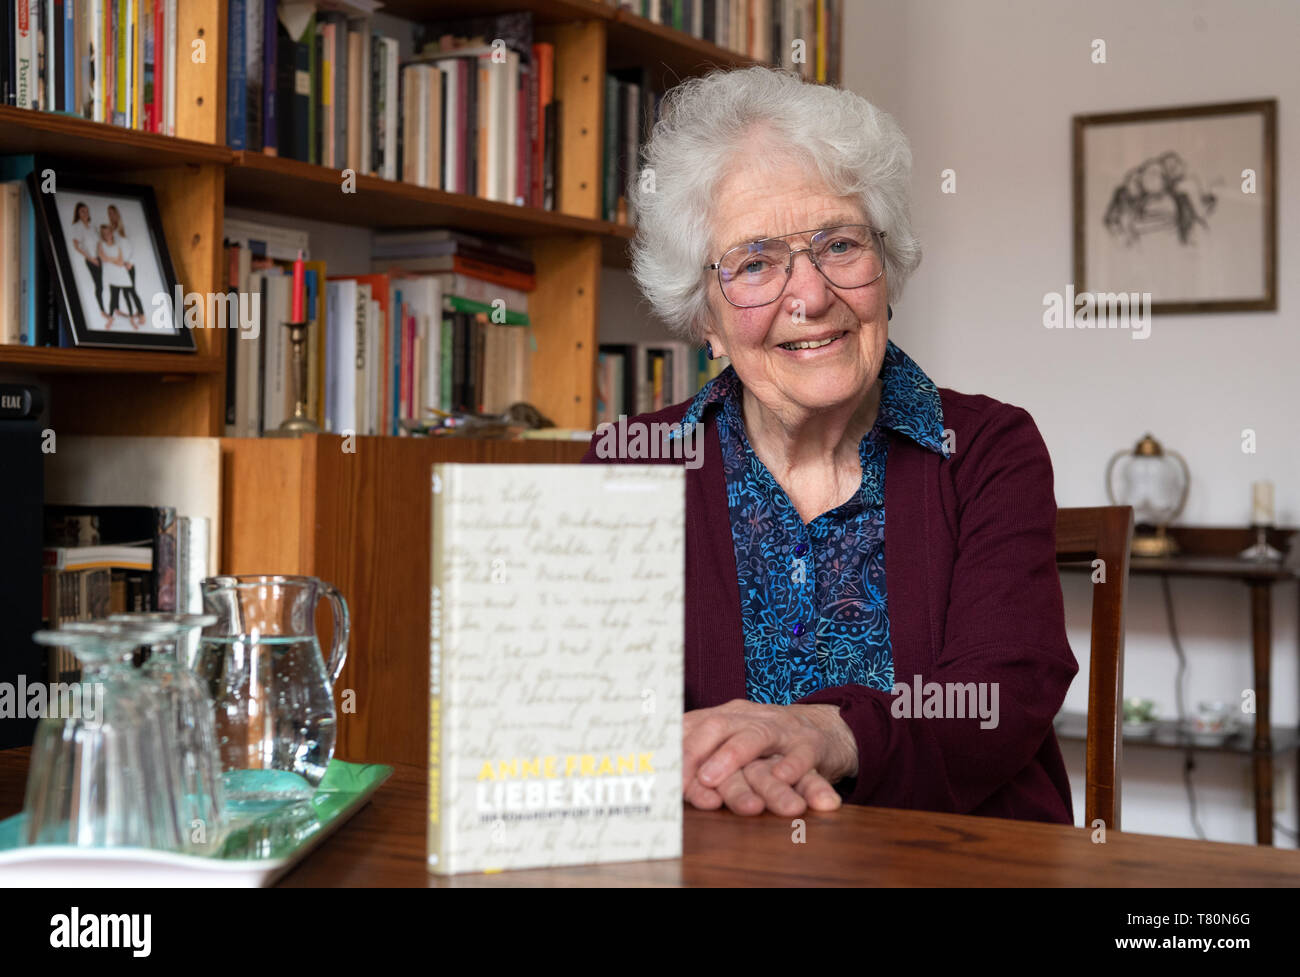 Berlin, Germany. 09th May, 2019. Laureen Nussbaum, a friend of the sisters Margot and Anne Frank, smiles during a dpa interview about the book 'Anne Frank - Liebe Kitty'. 'Dear Kitty' is the imaginary addressee of many diary letters from Anne Frank. (for 'Love Kitty' - Anne Frank's novel is rediscovered) Credit: Soeren Stache/dpa/Alamy Live News - Stock Image